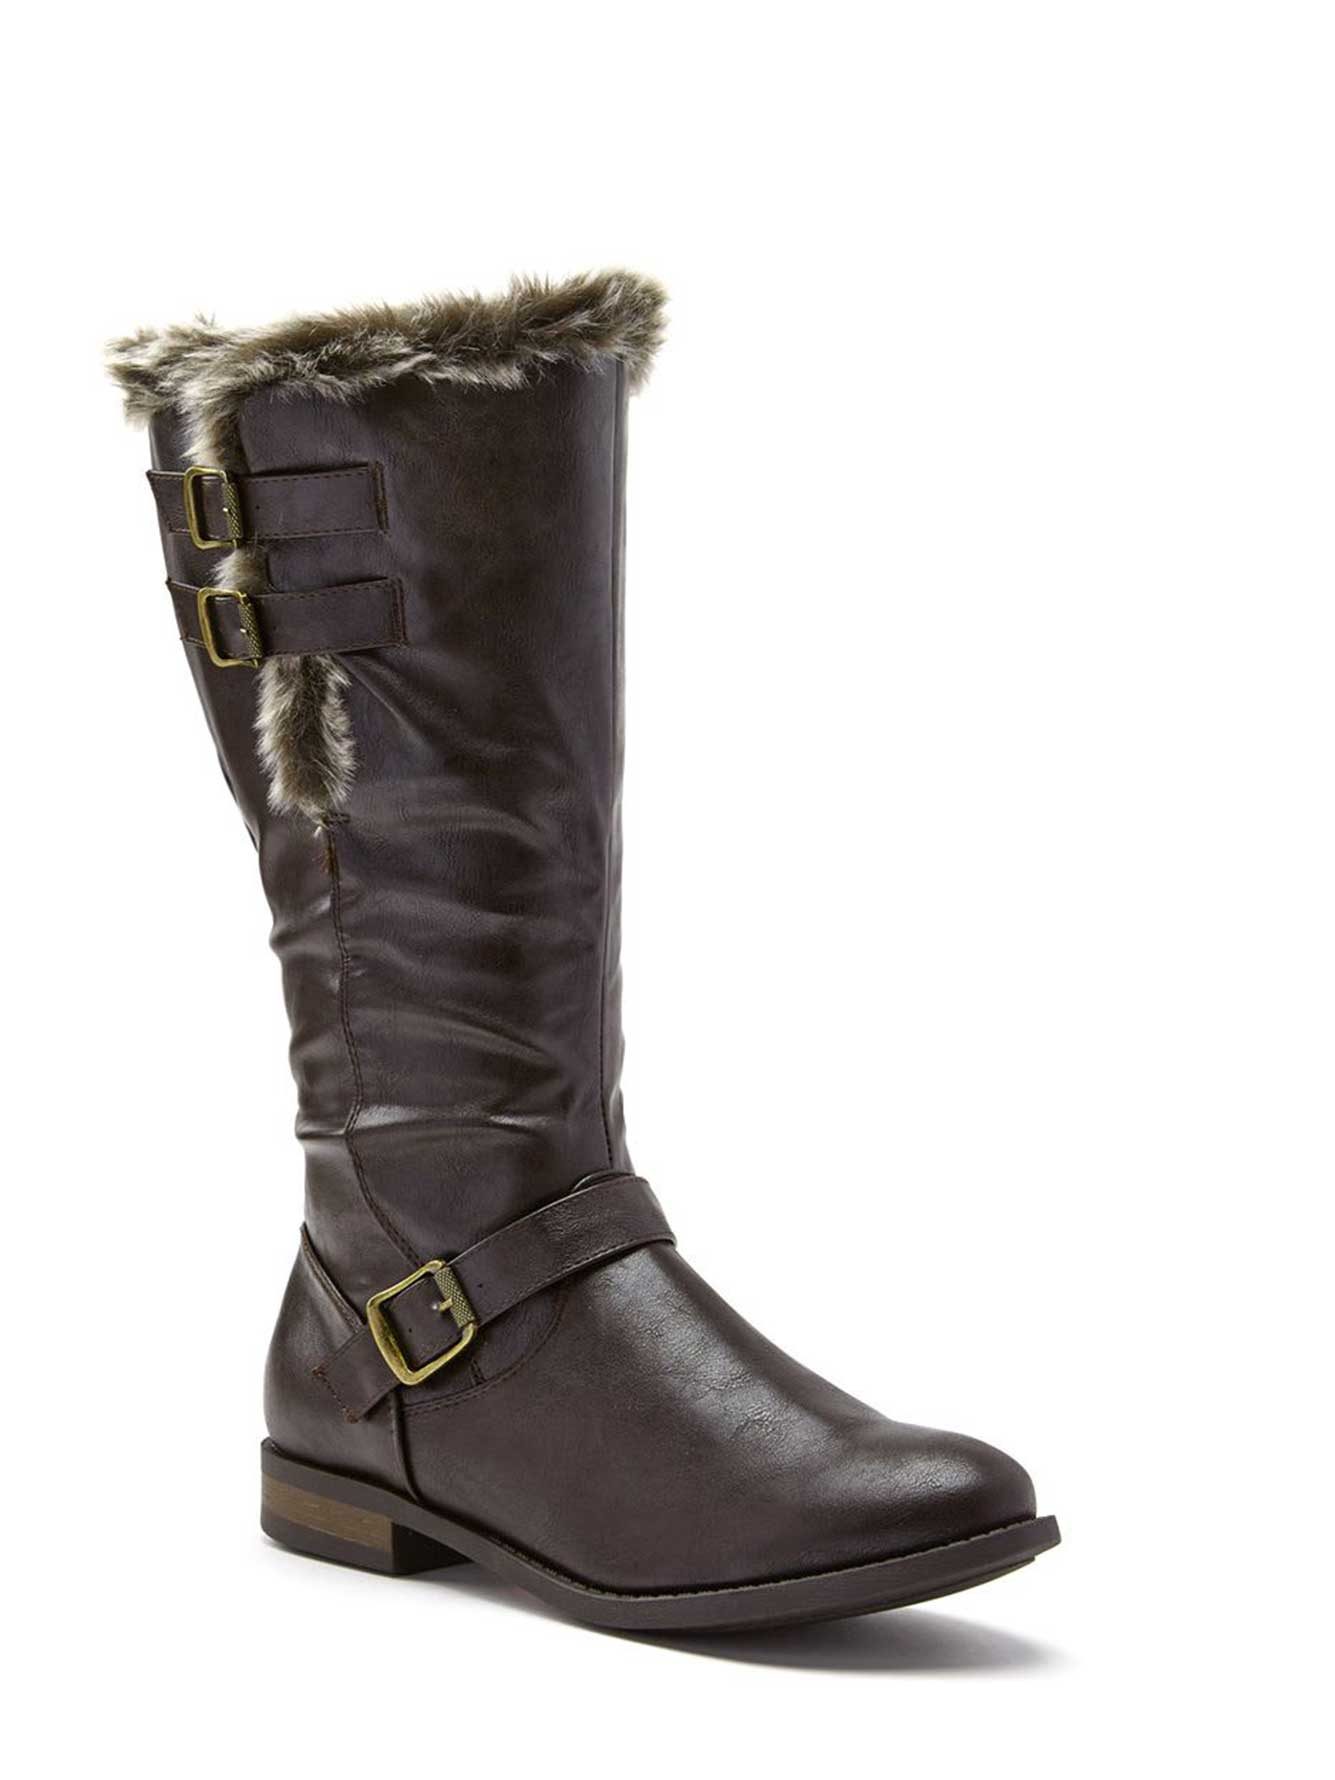 Faux-Leather Wide-Width Winter Boots | Penningtons